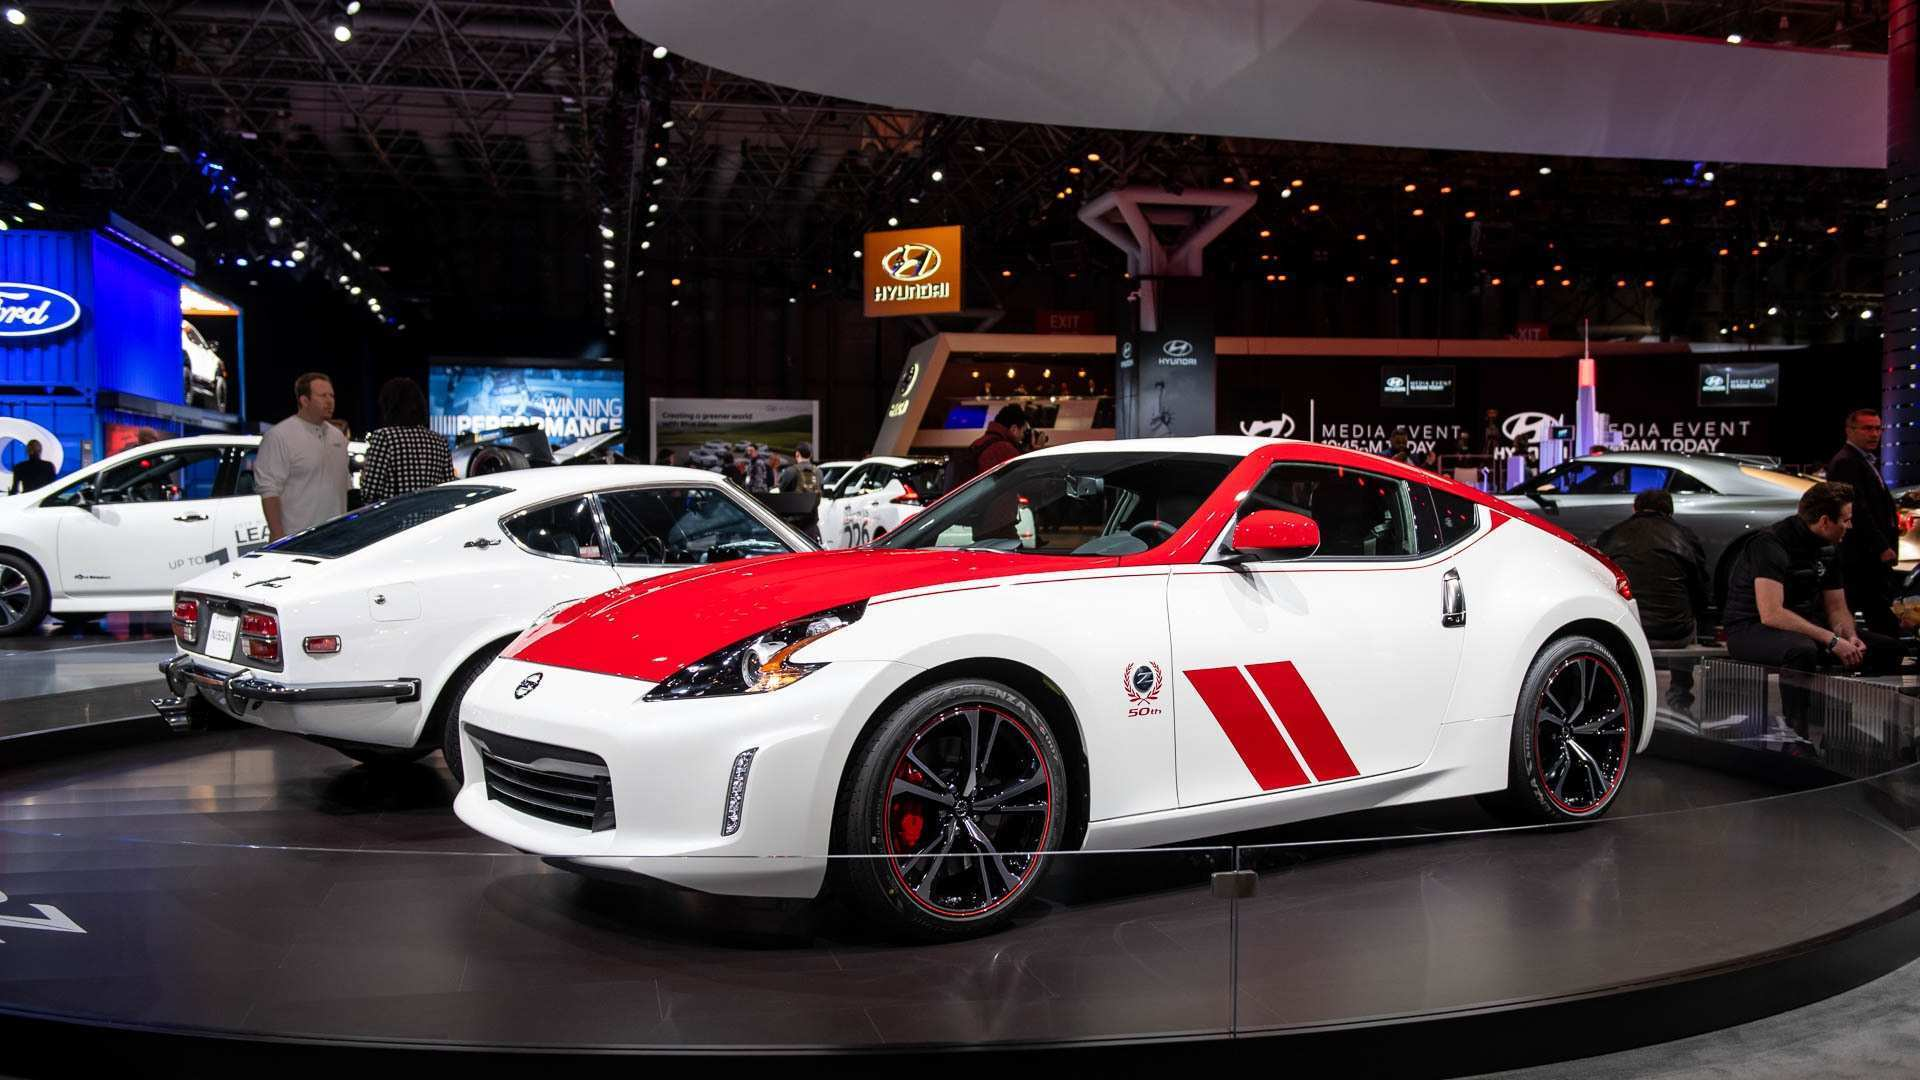 81 The Best 2020 Nissan Z Car New Model And Performance